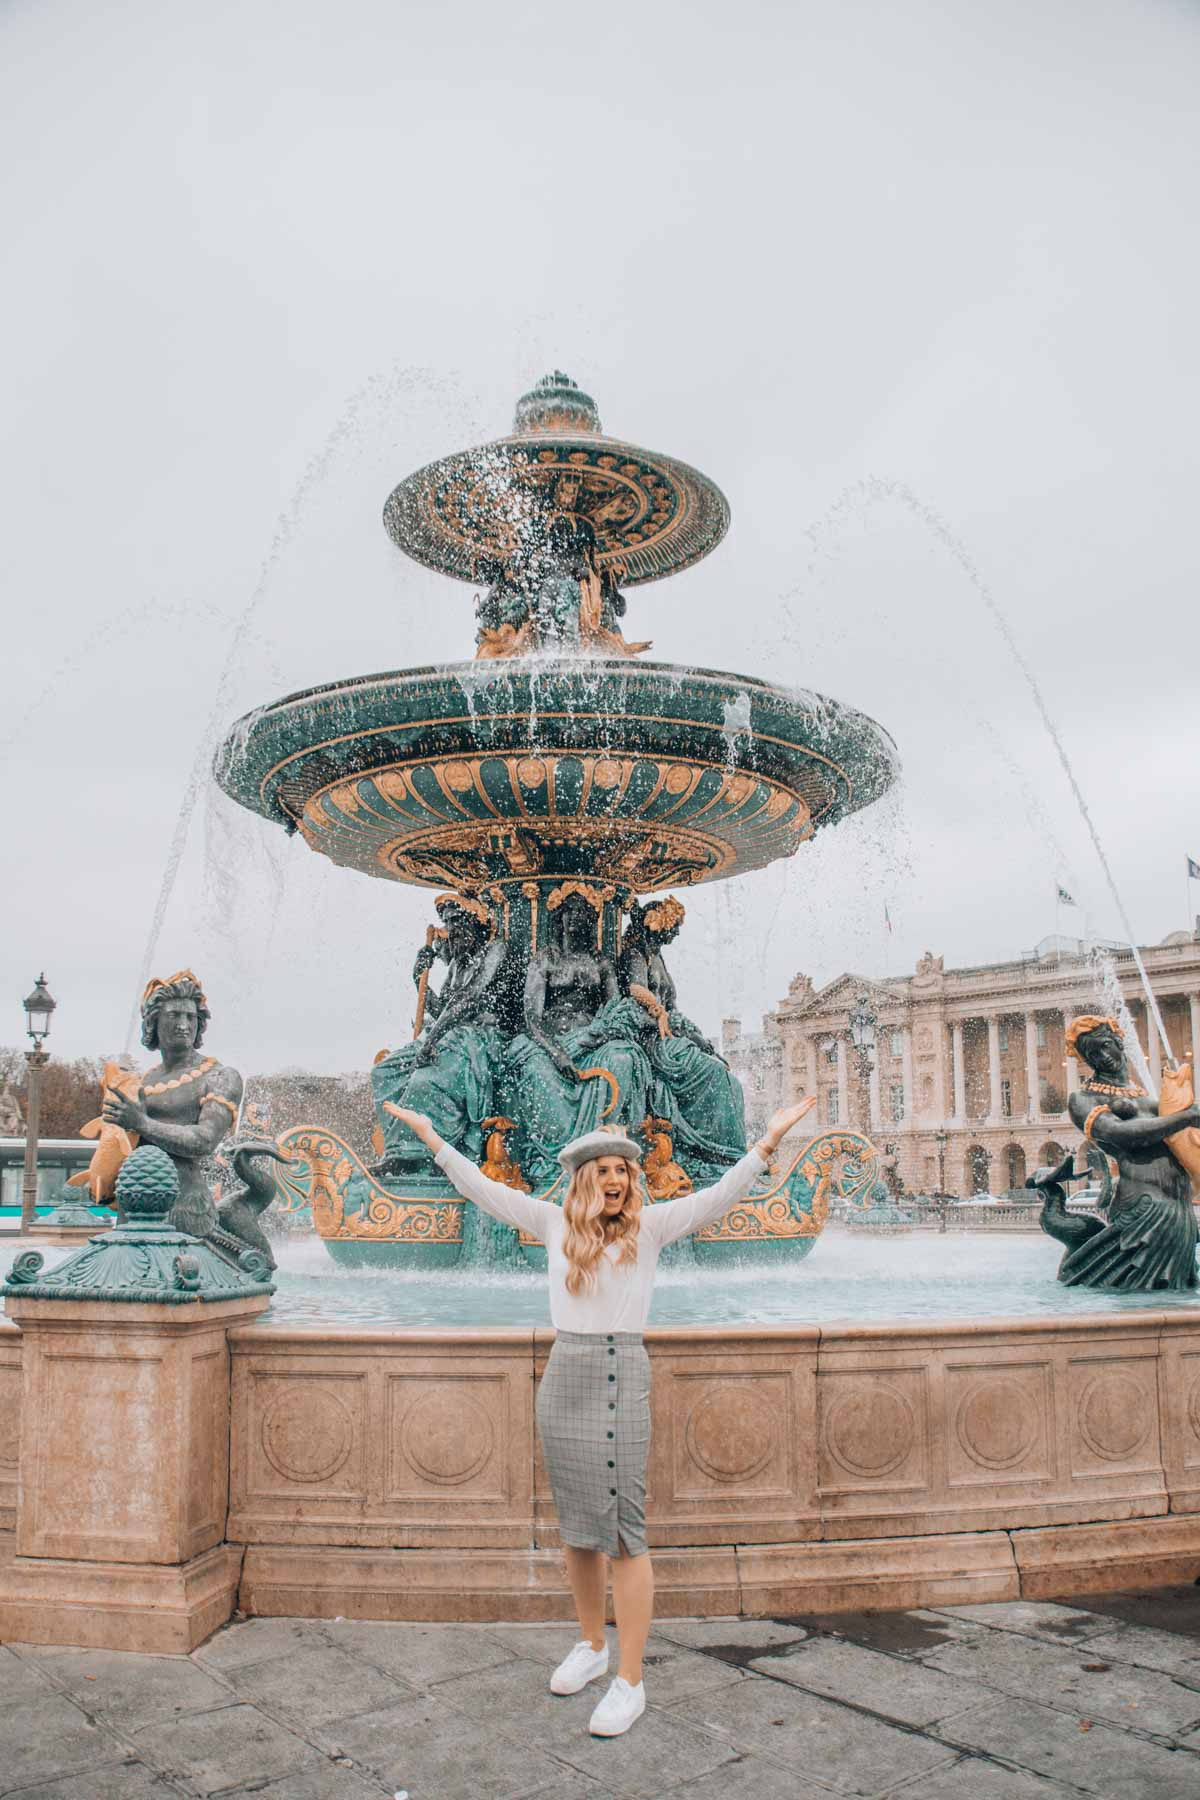 Fontaine des Mers Paris travel guide